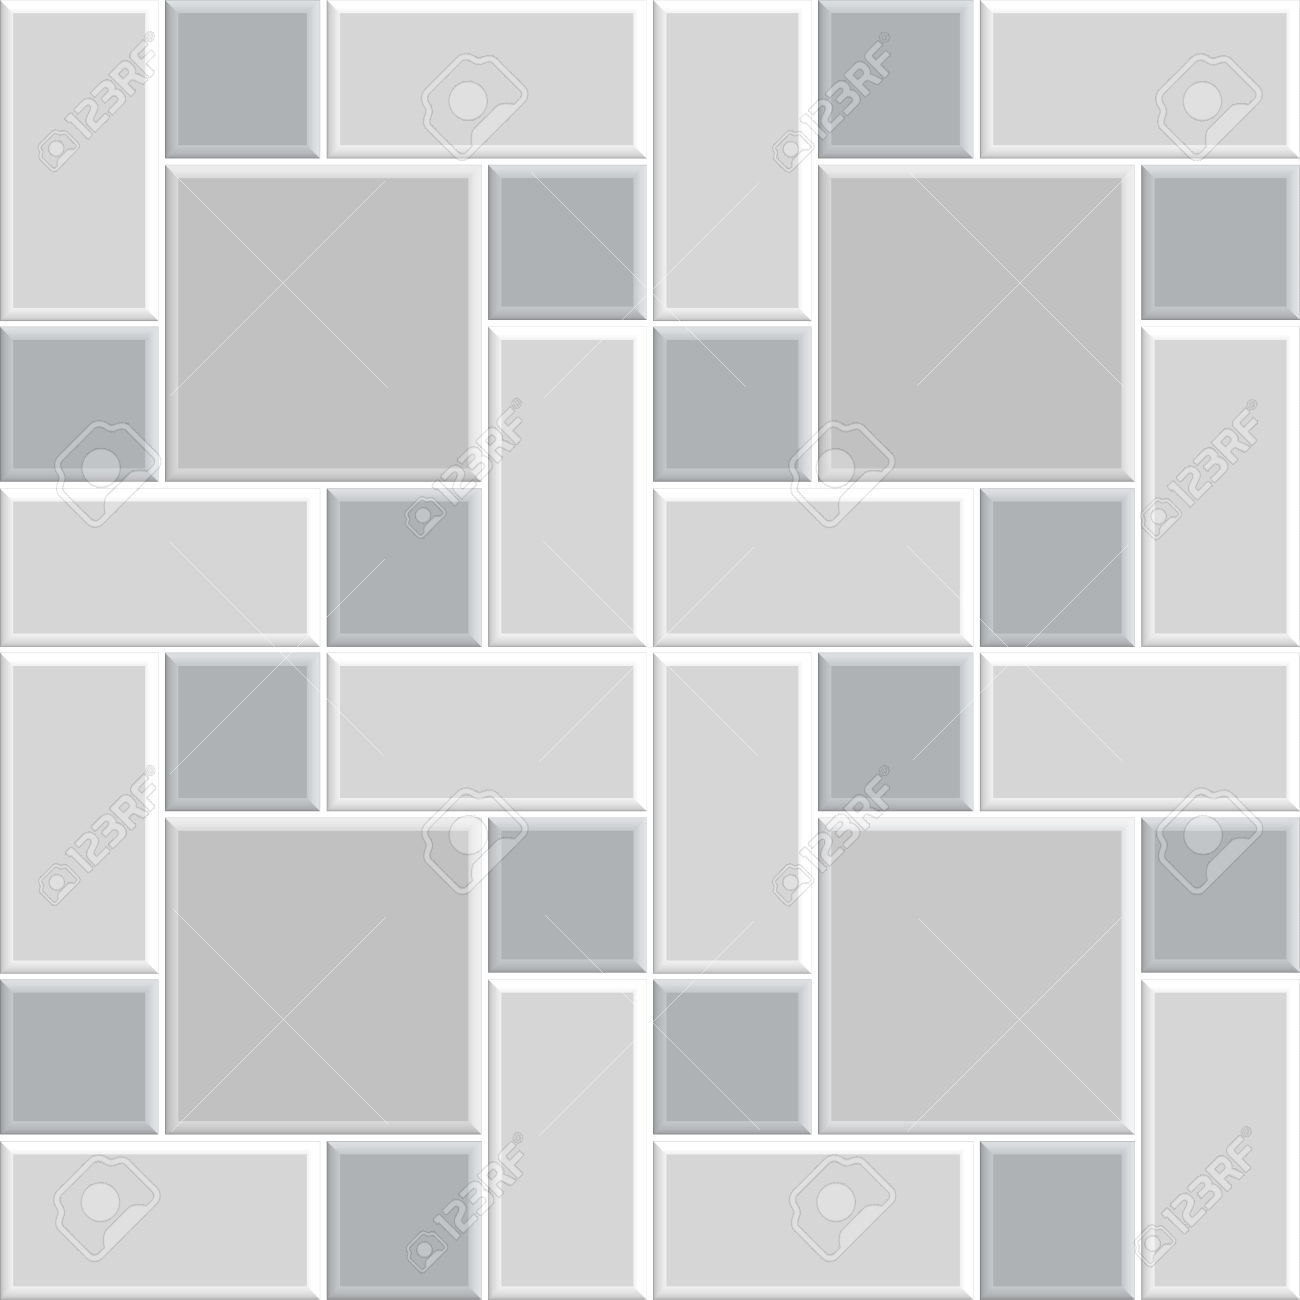 Modern floor tiles texture modern bathroom floor tiles texture modern floor tiles texture tile flooring pattern gallery design ideas image collections modern floor tiles dailygadgetfo Images